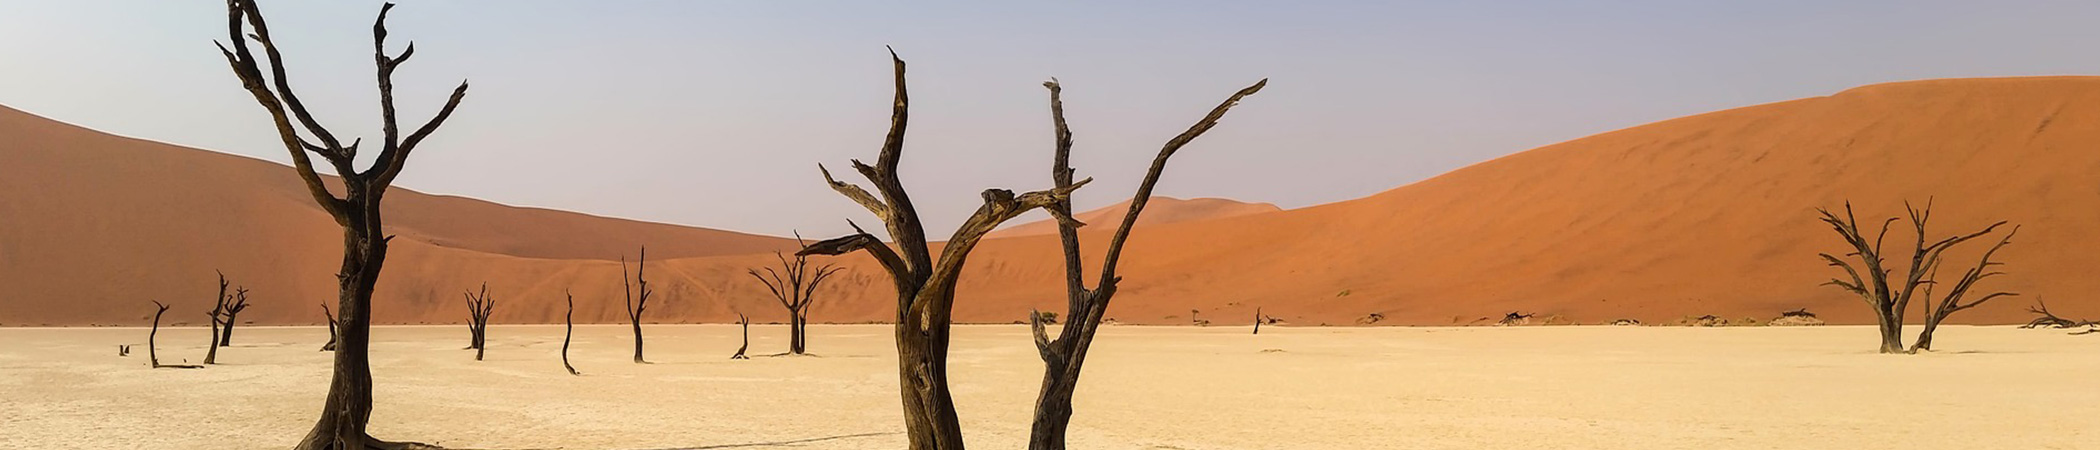 Namibia Holiday Destination